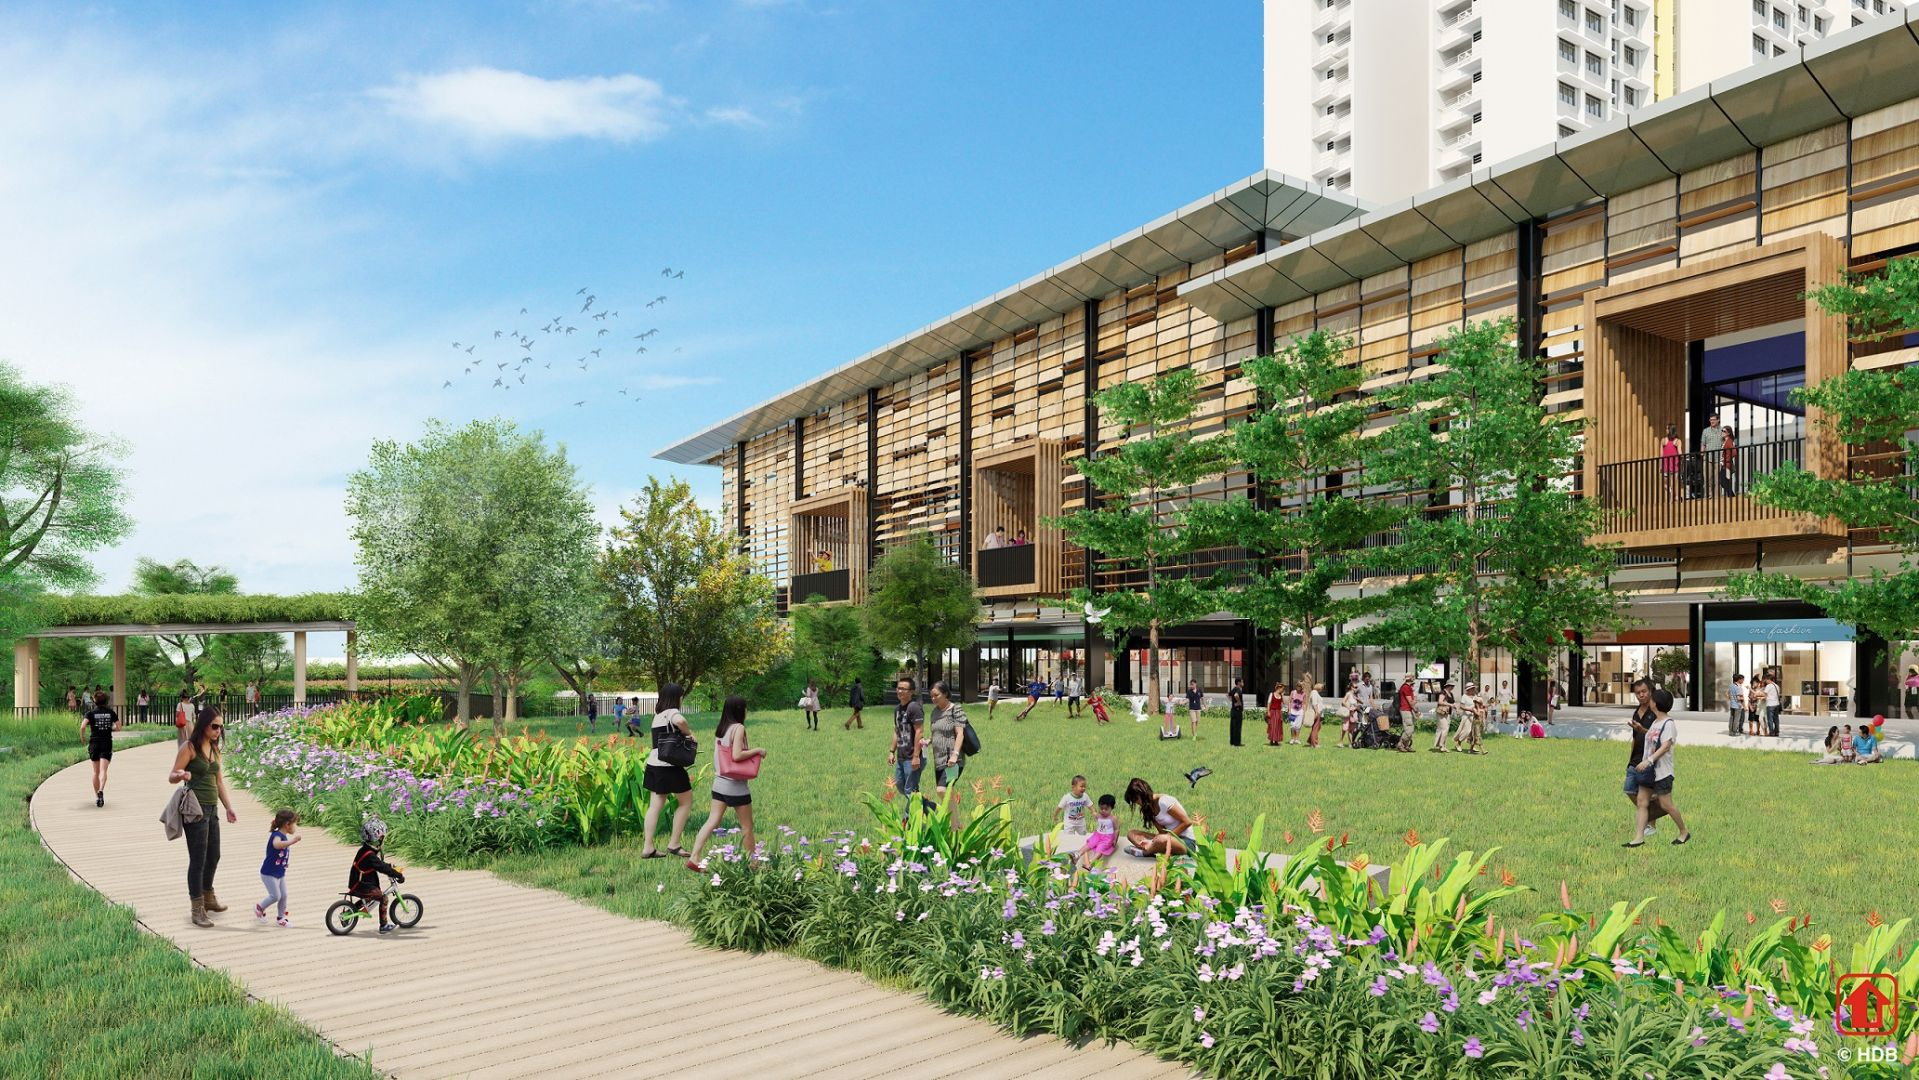 EC Singapore - New Singapore EC, Northshore Plaza in Punggol, About Singapore EC, EC Eligibility, Apply Singapore EC, Executive Condo Singapore, Executive Condo.